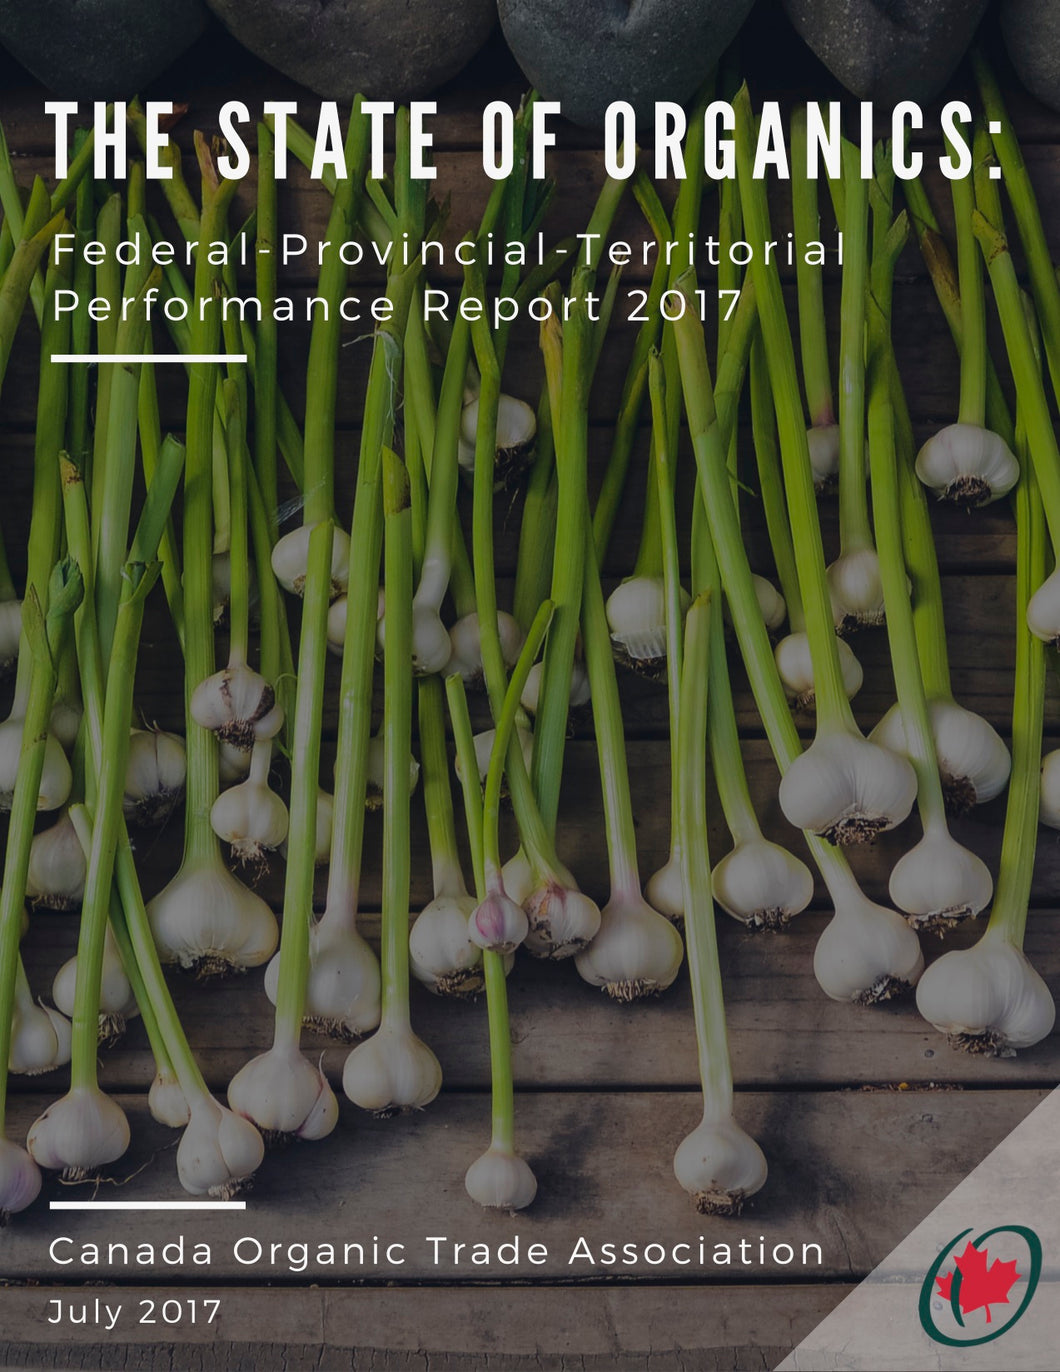 The State of Organics: Federal-Provincial-Territorial Performance Report 2017